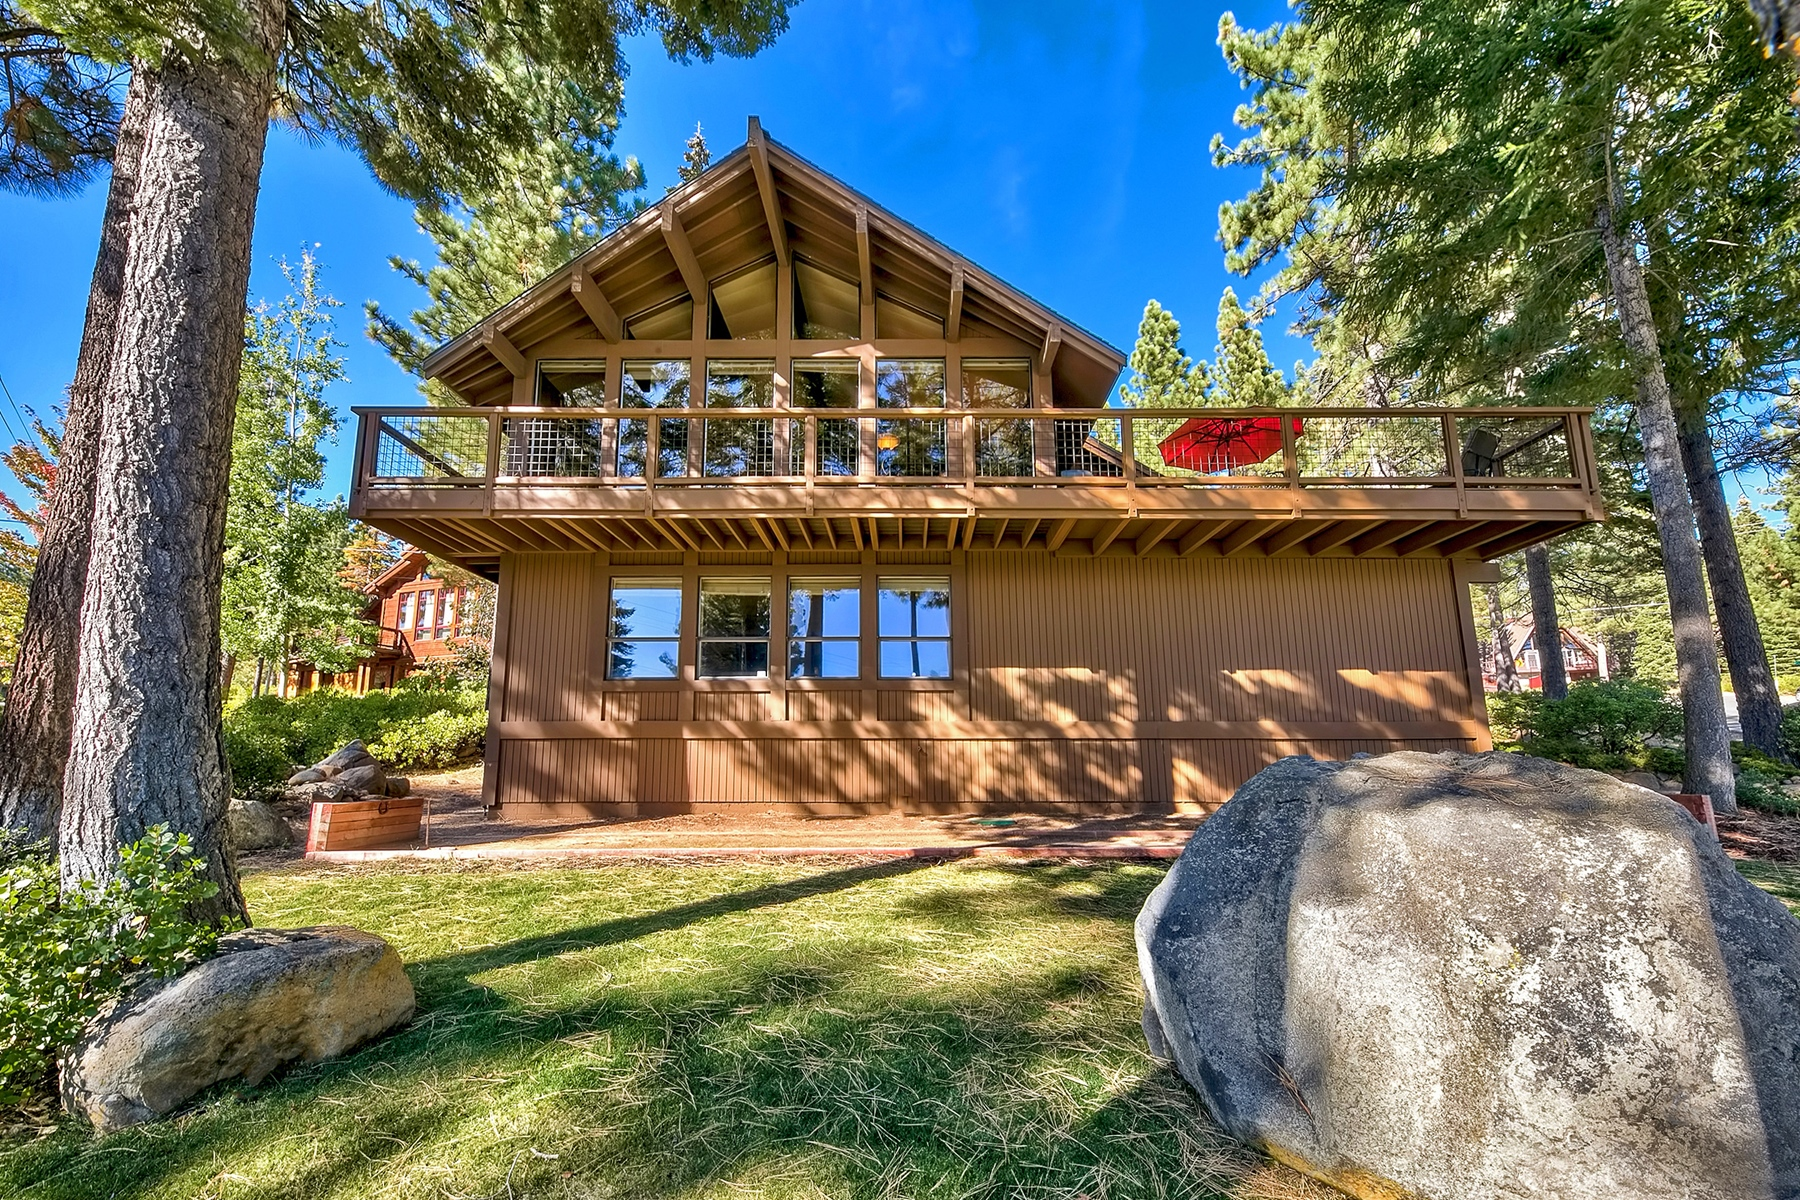 Single Family Home for Active at 64 Observation Drive, Tahoe City, CA 96145 64 Observation Drive Tahoe City, California 96145 United States